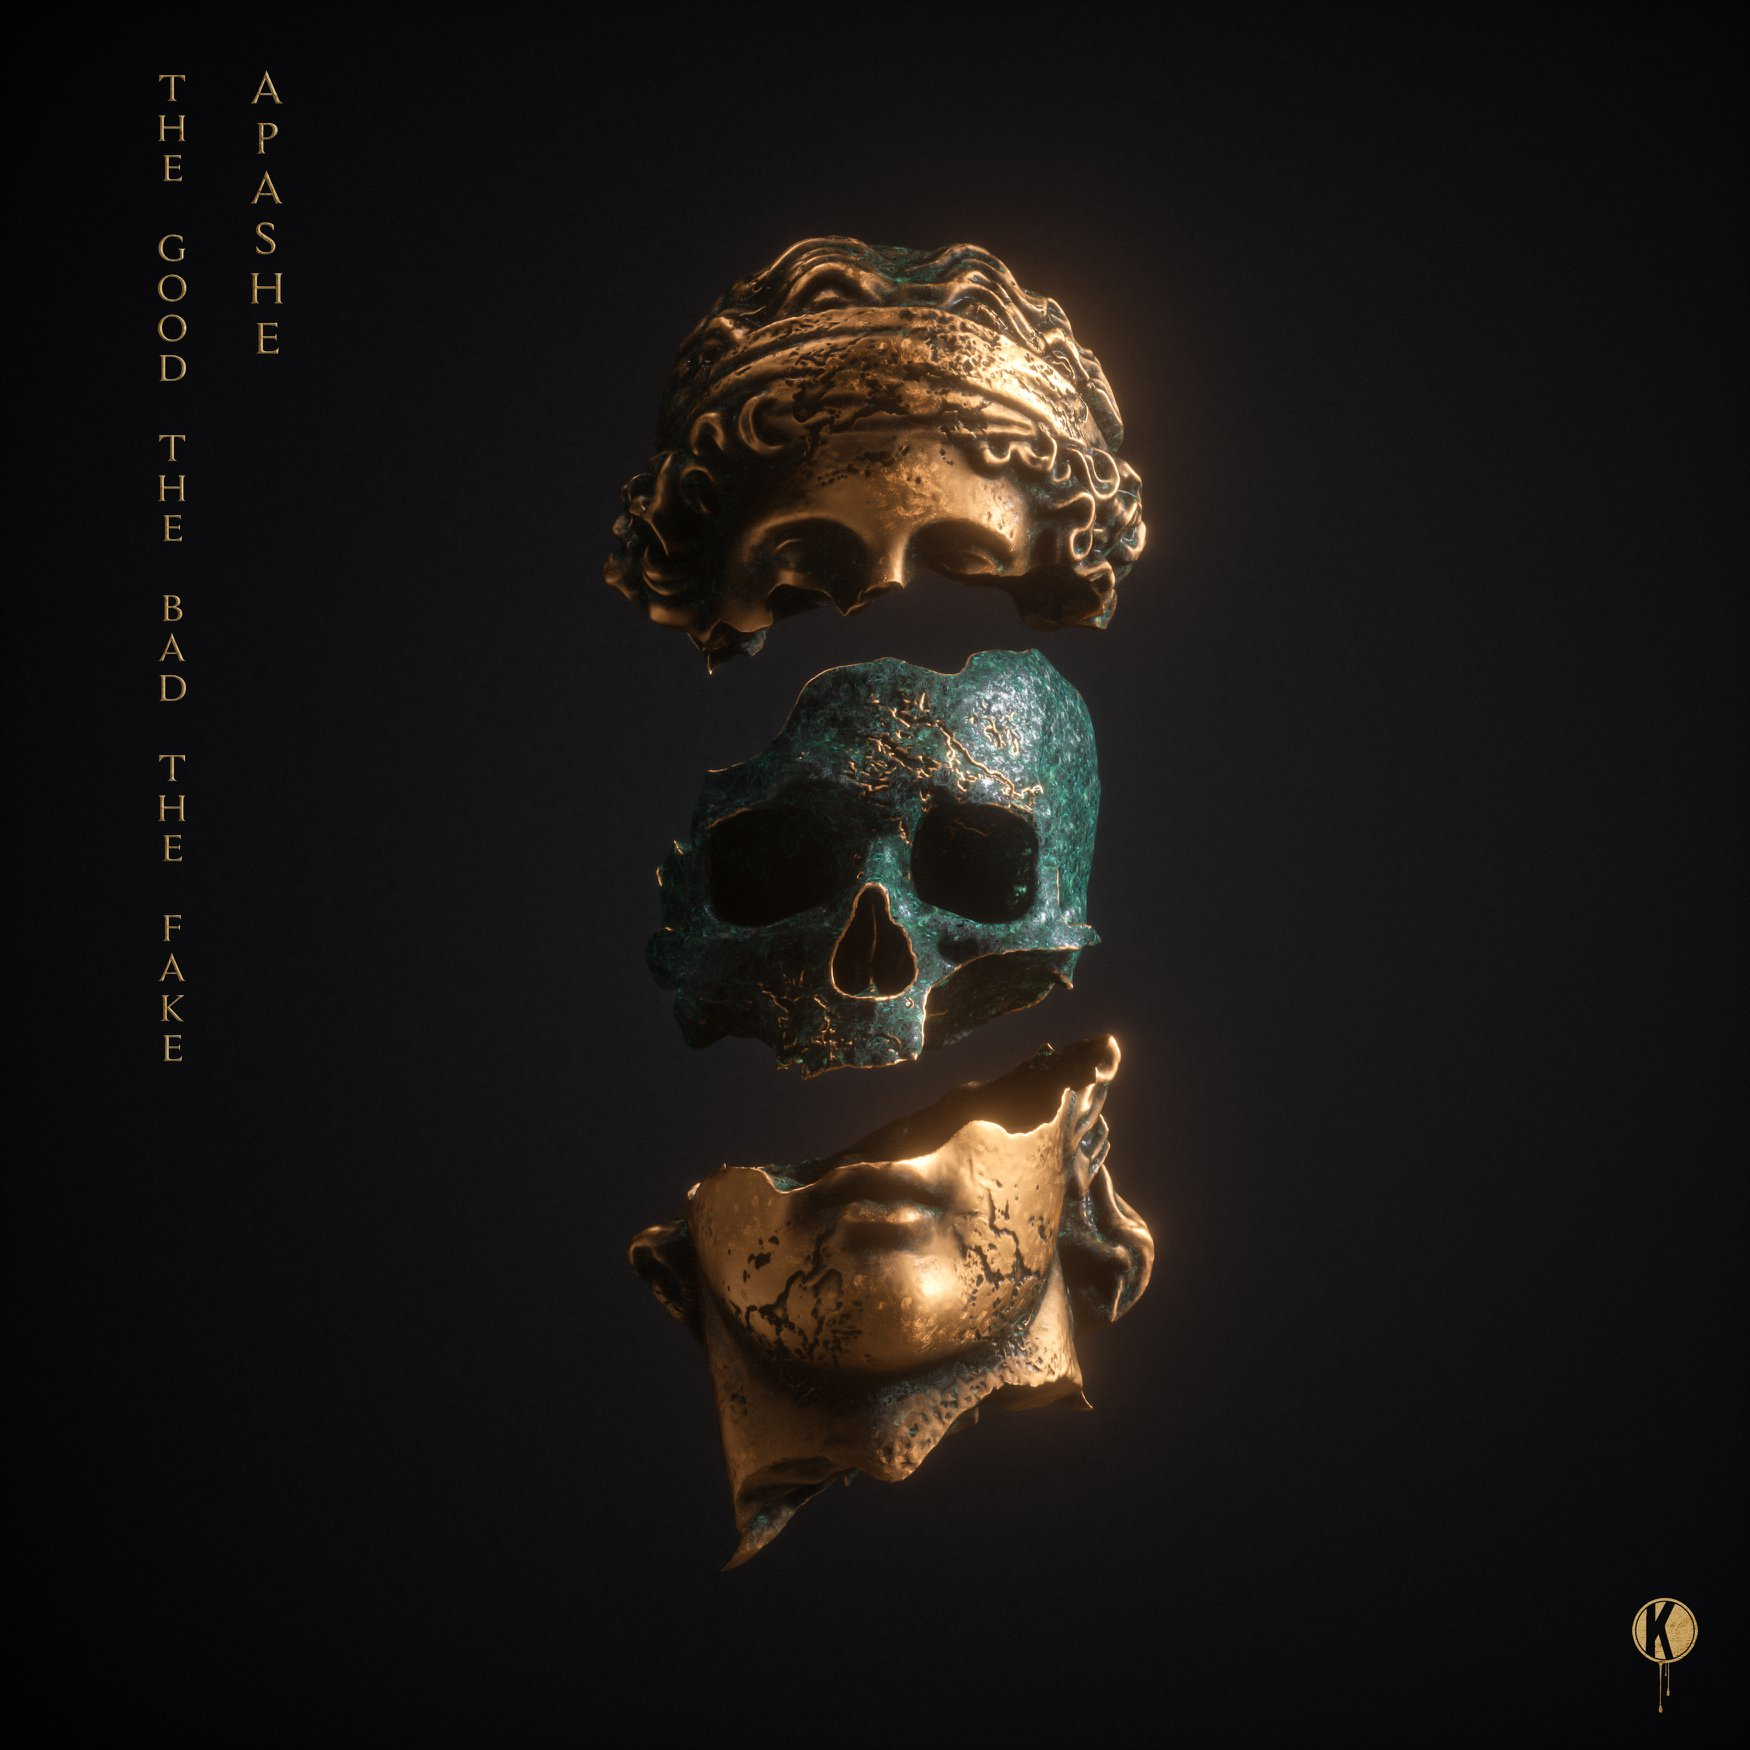 Top Trending Wallpapers: Apashe Shares 'The Good, The Bad & The Fake' In New EP